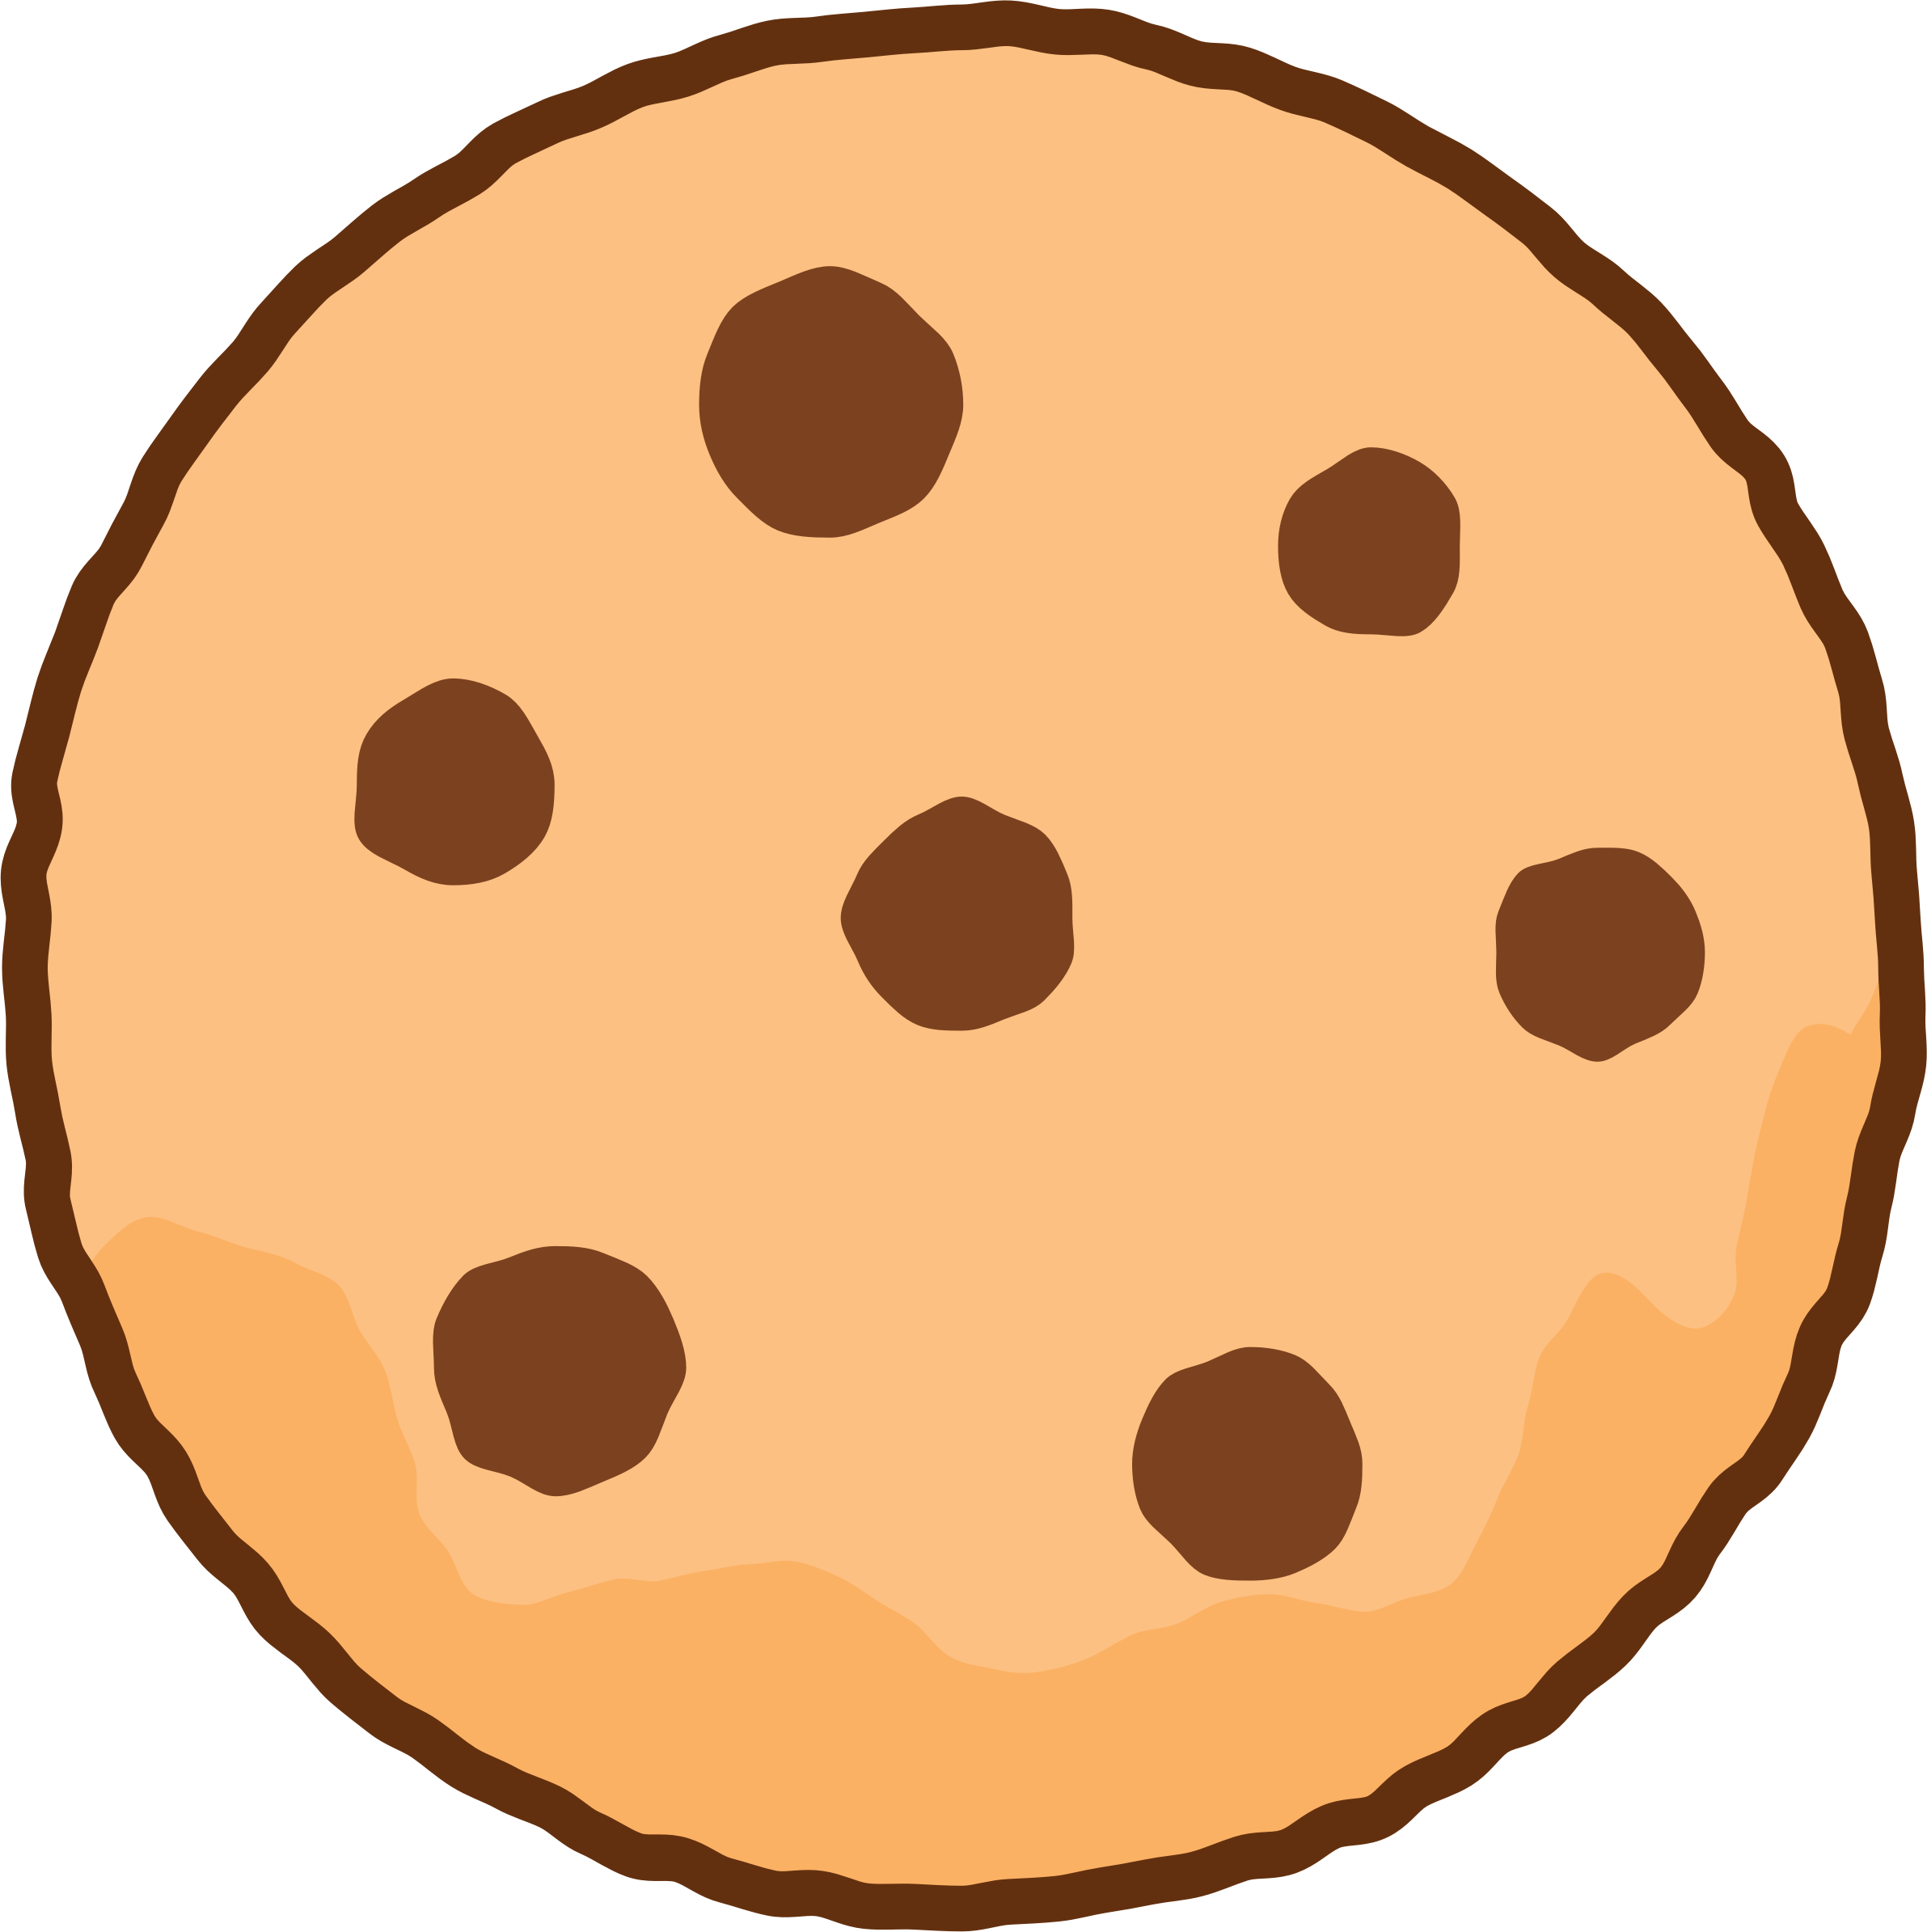 Cookie PNG Transparent Images Background image #47942